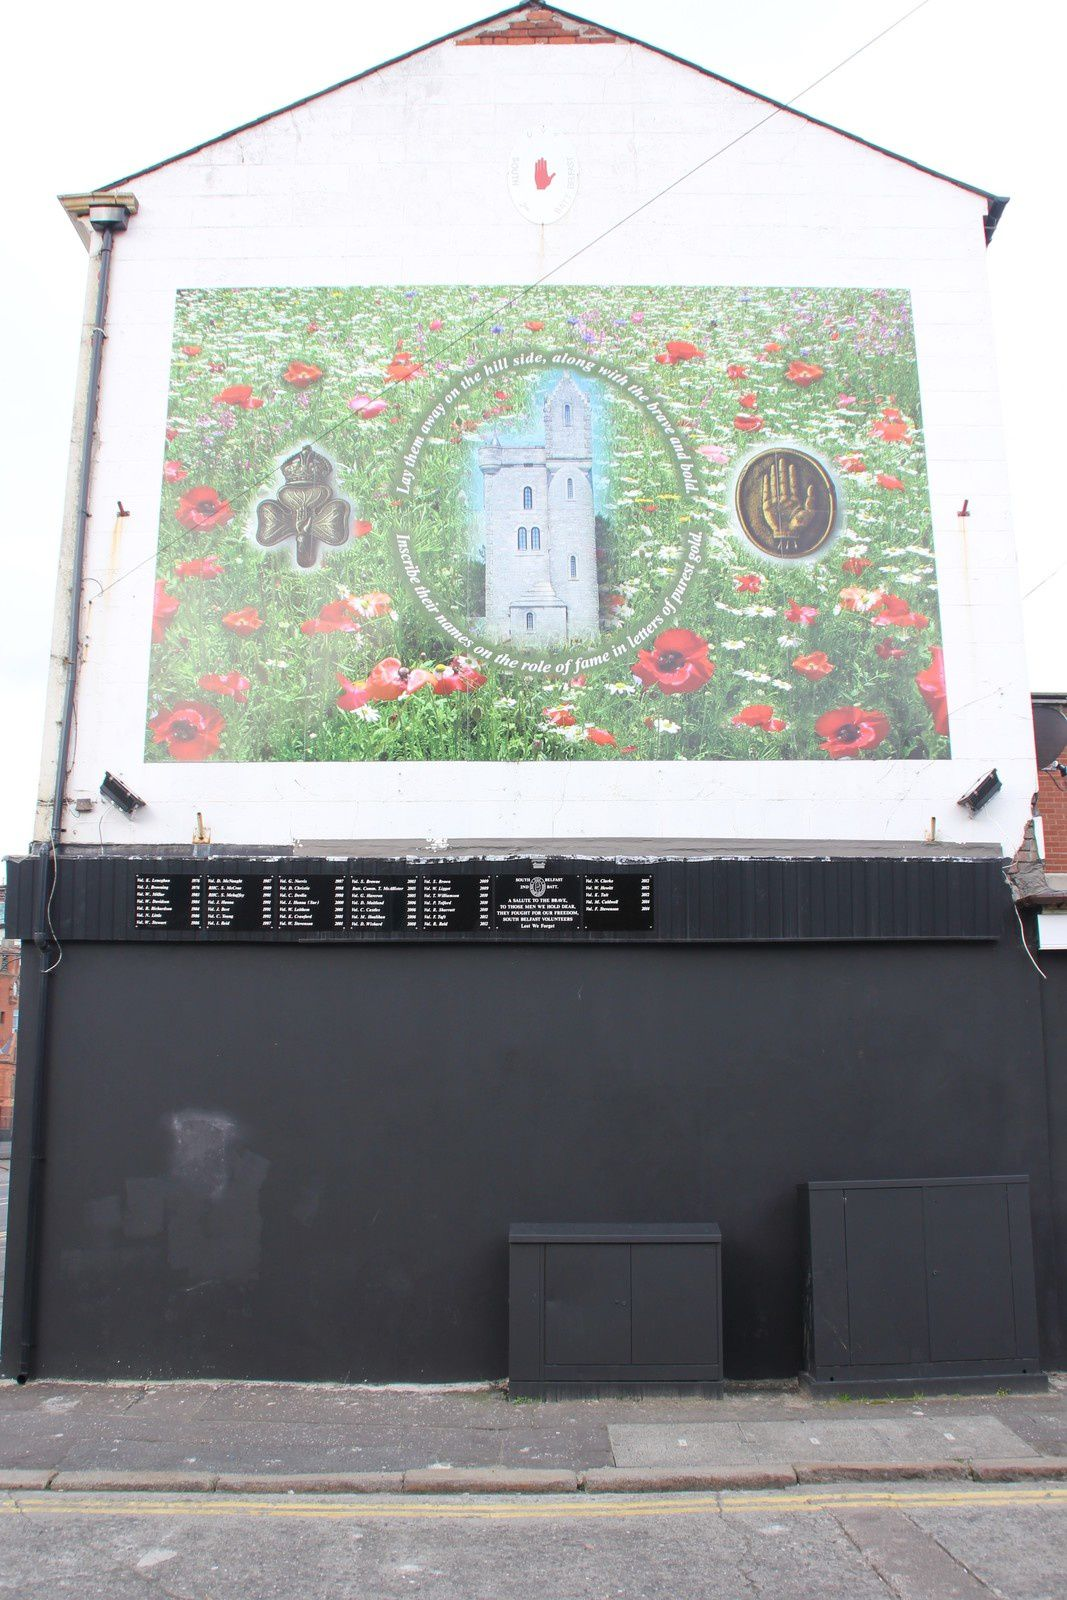 612) Donegall Pass, South Belfast